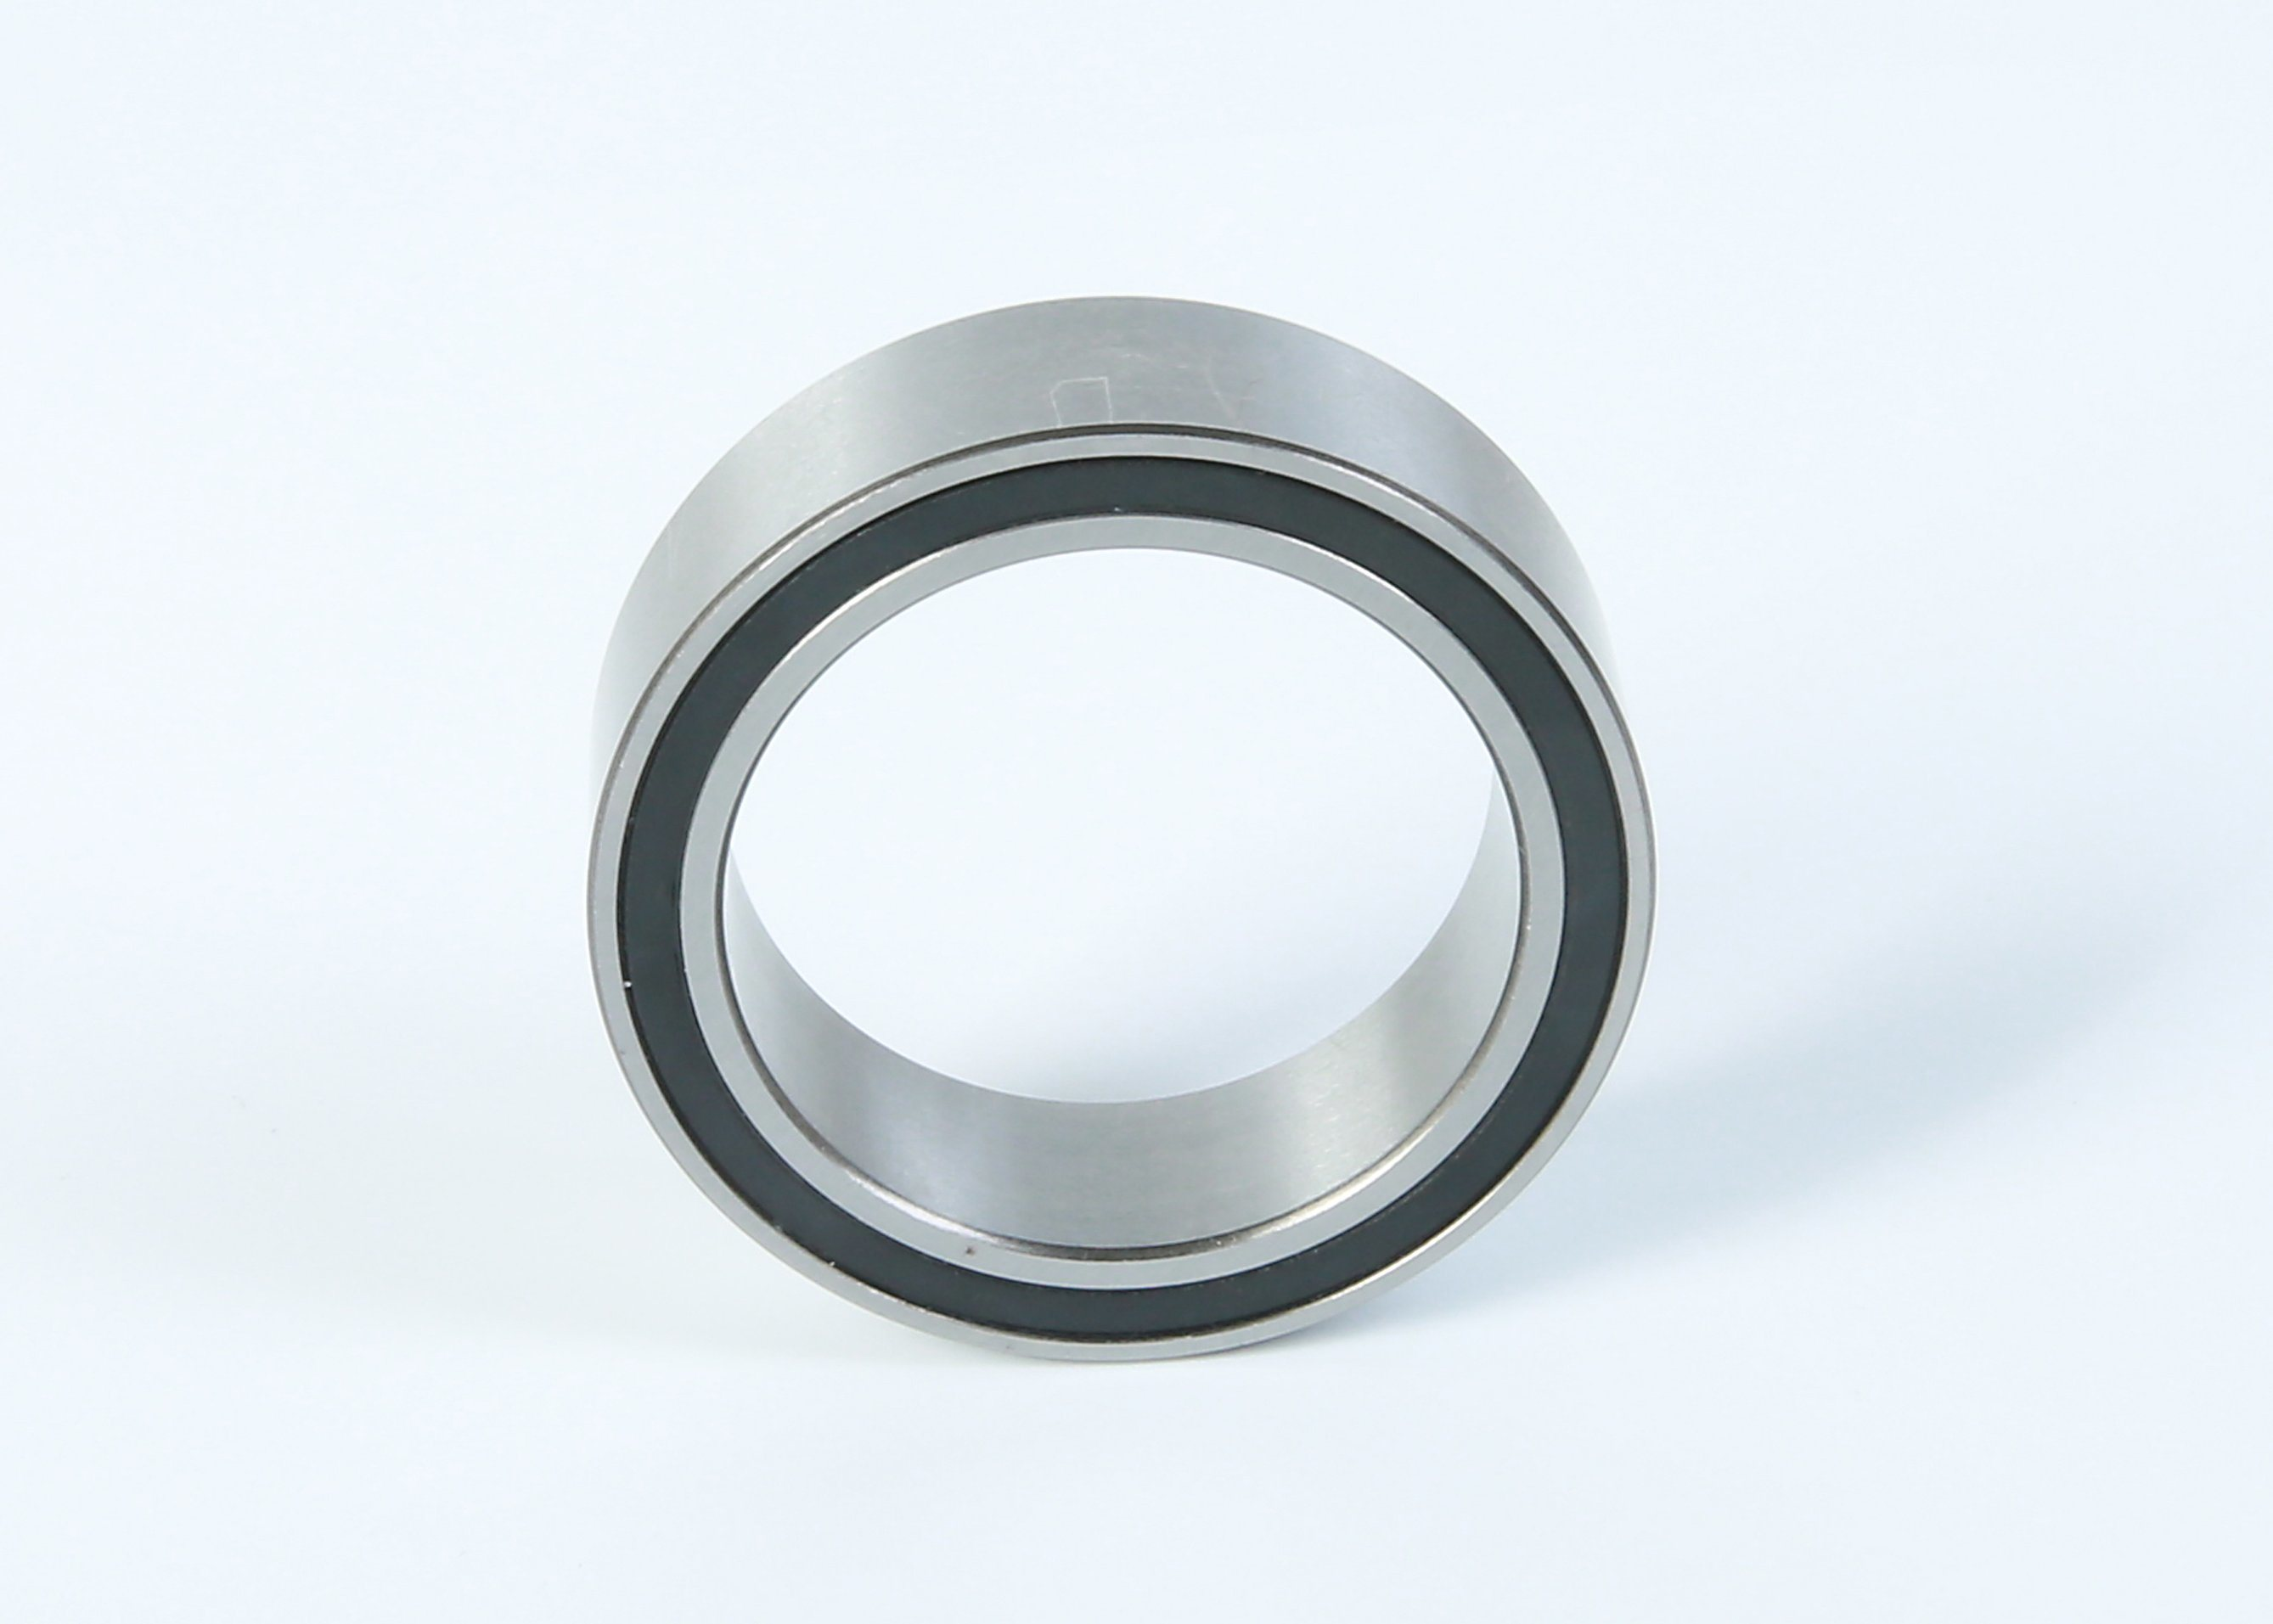 NEW High Quality 6010-2RS bearing 6010 2RS bearings 50 x 80 x 16-2 pieces